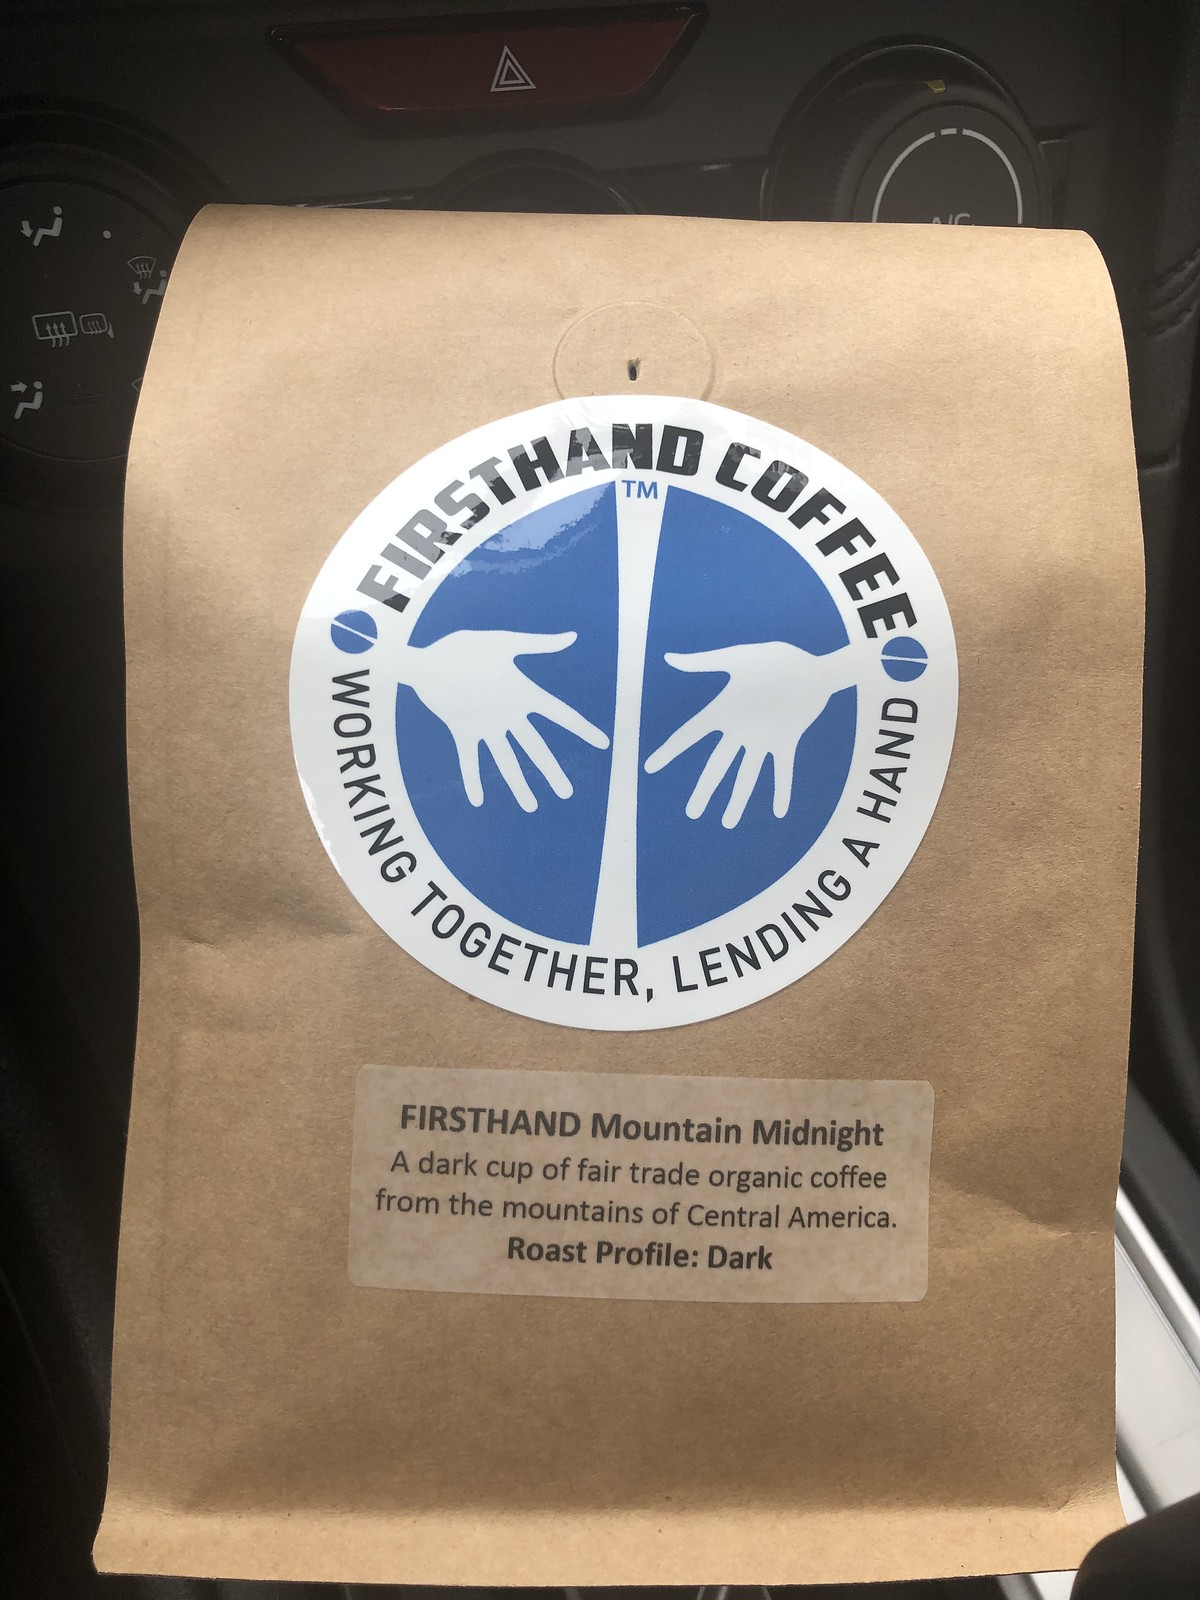 First hand coffee